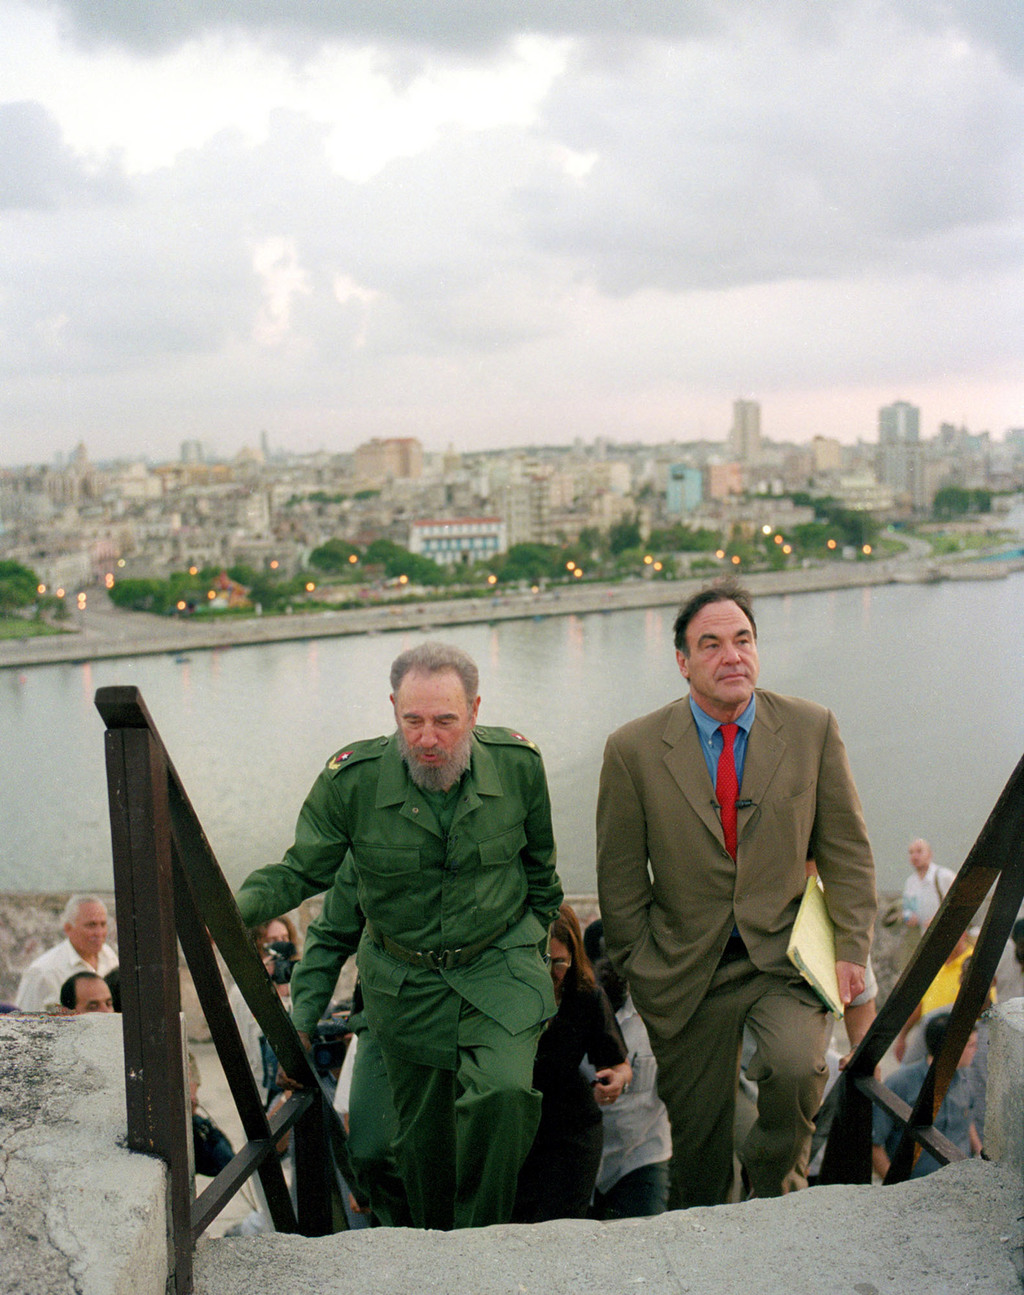 FILE - In this undated file publicity photo released by HBO, Cuba's leader Fidel Castro, left, walks with Oliver Stone during Stone's m...